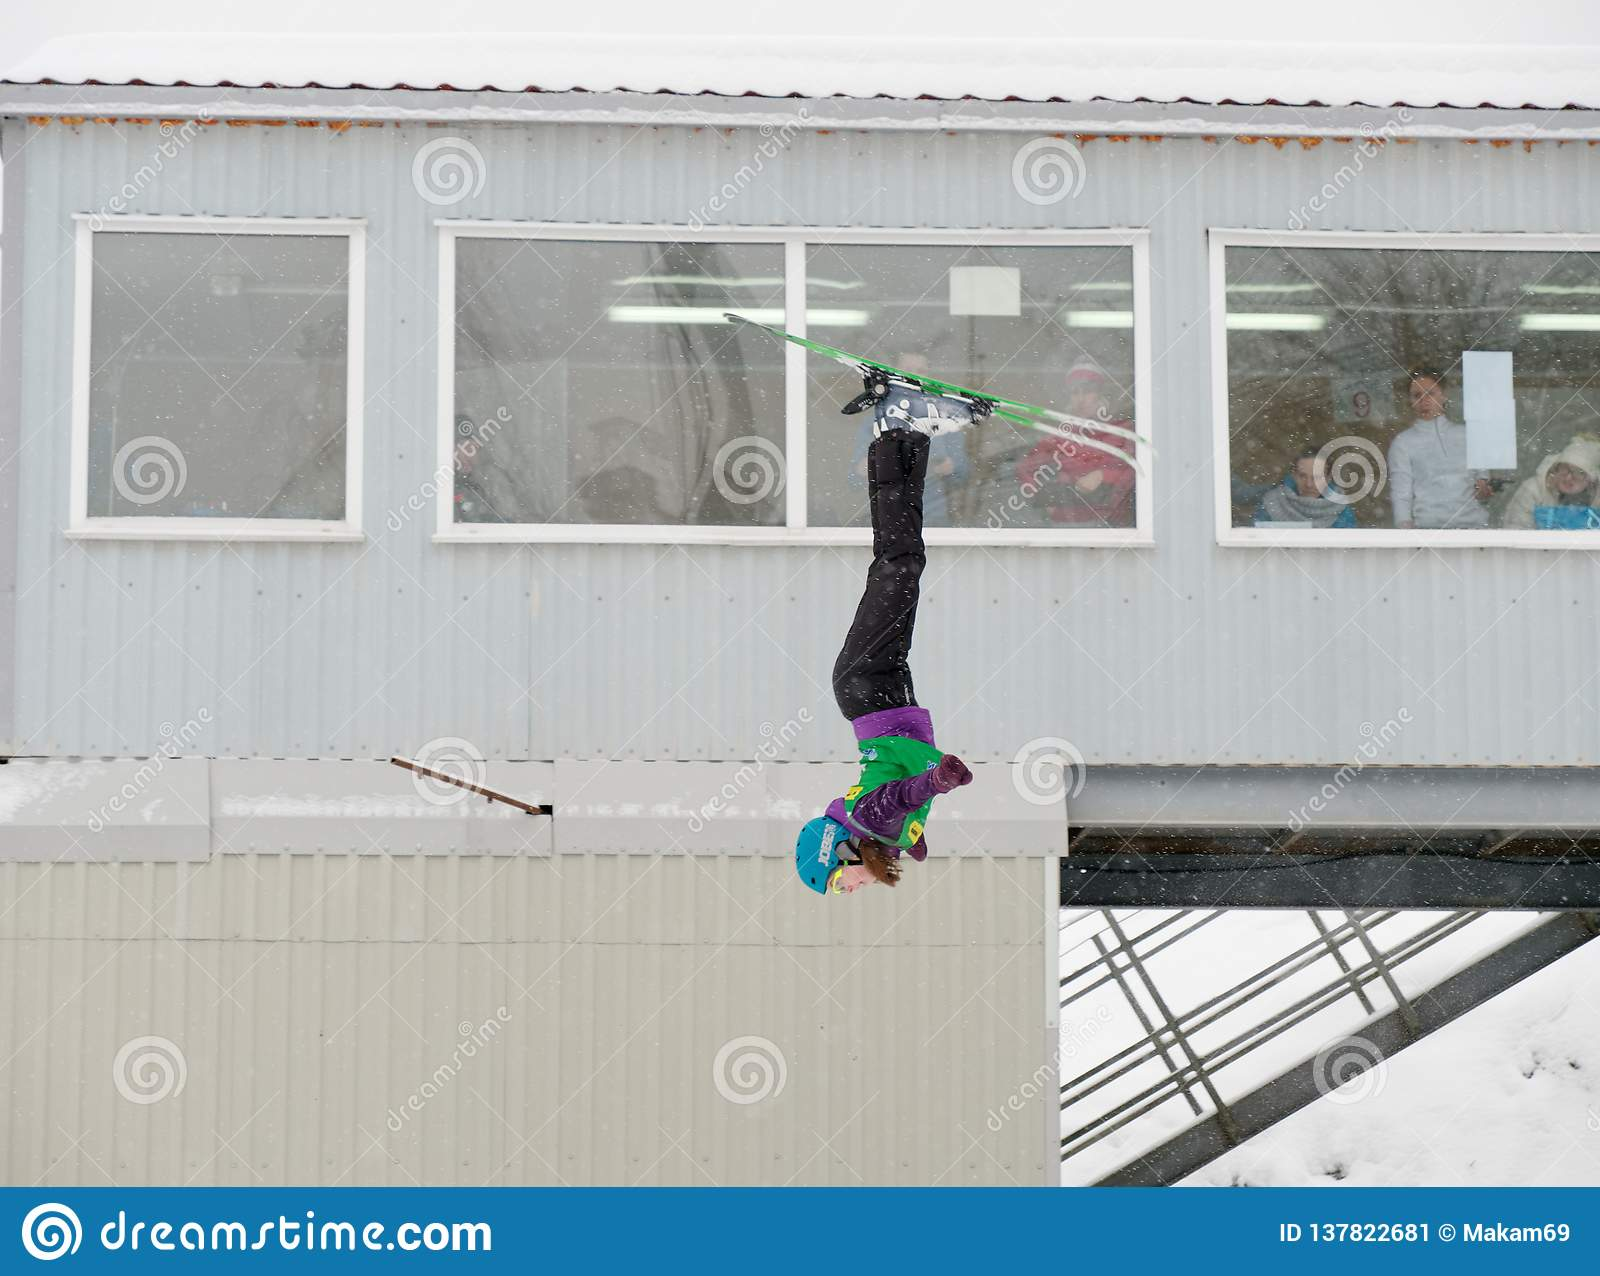 MINSK, BELARUS - JANUARY 26, 2019: Belarus freestyle championship among boys and girls born in 2001 and younger in the Sport